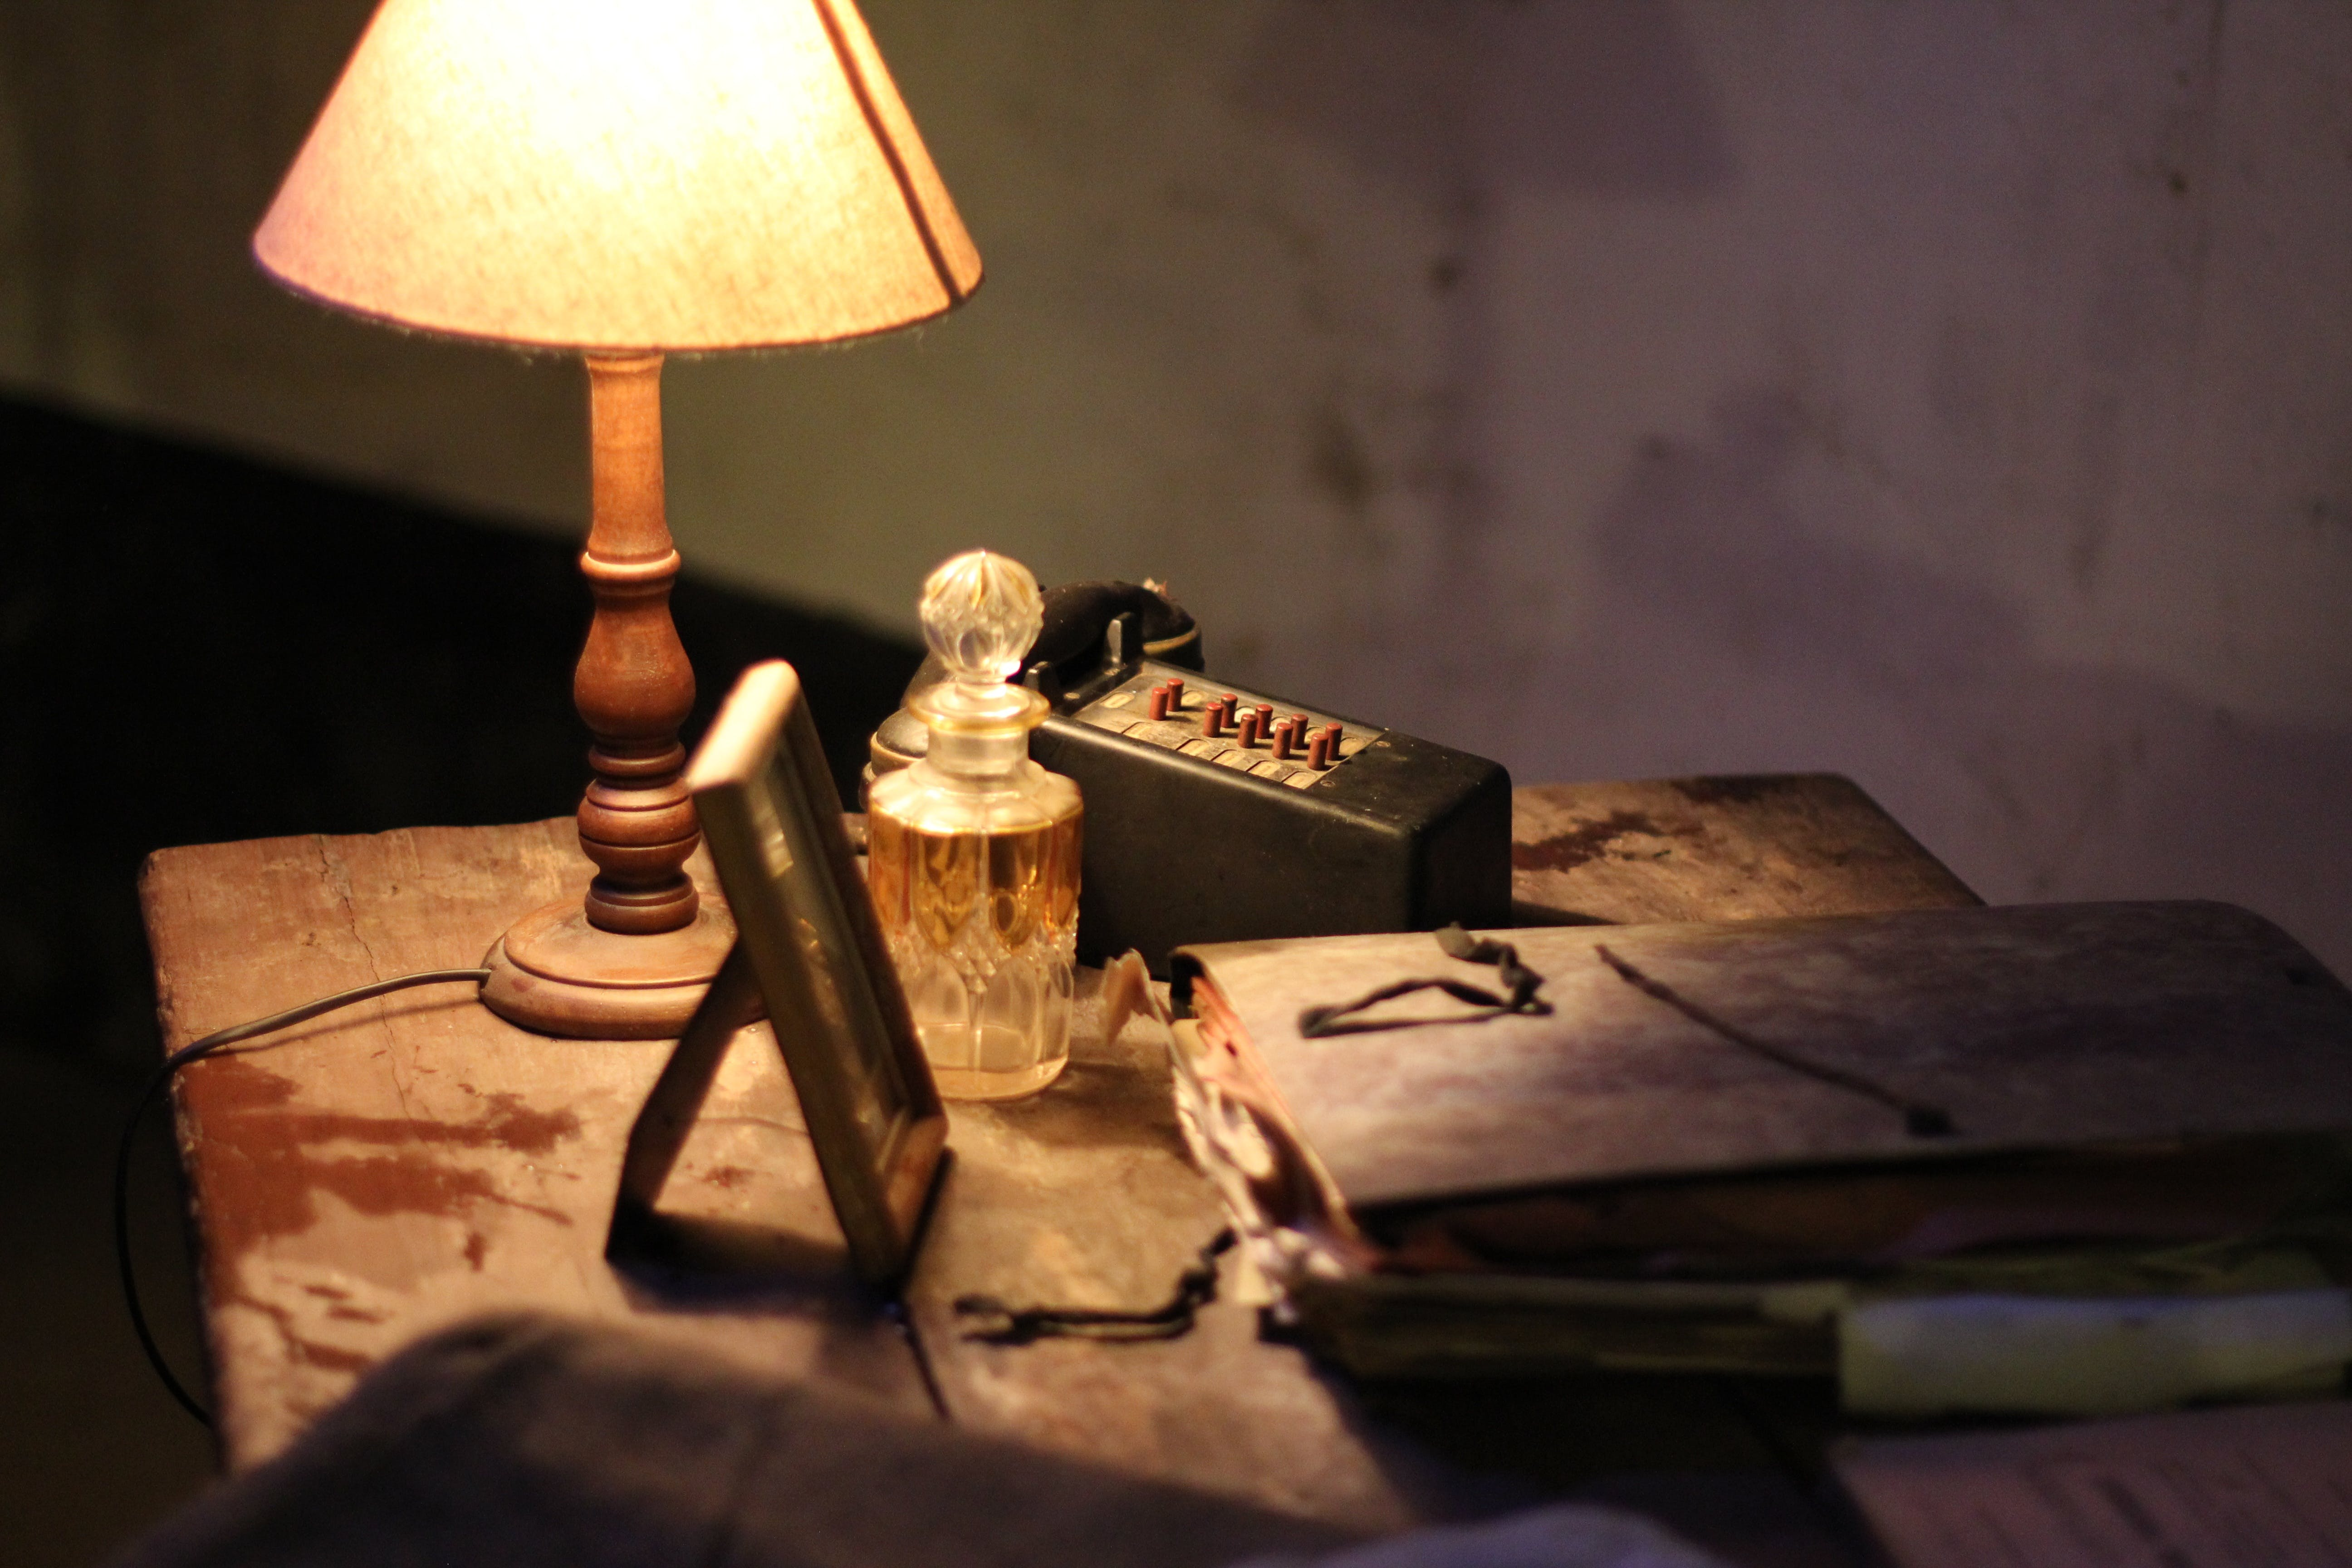 Black Book Beside Table Lamp